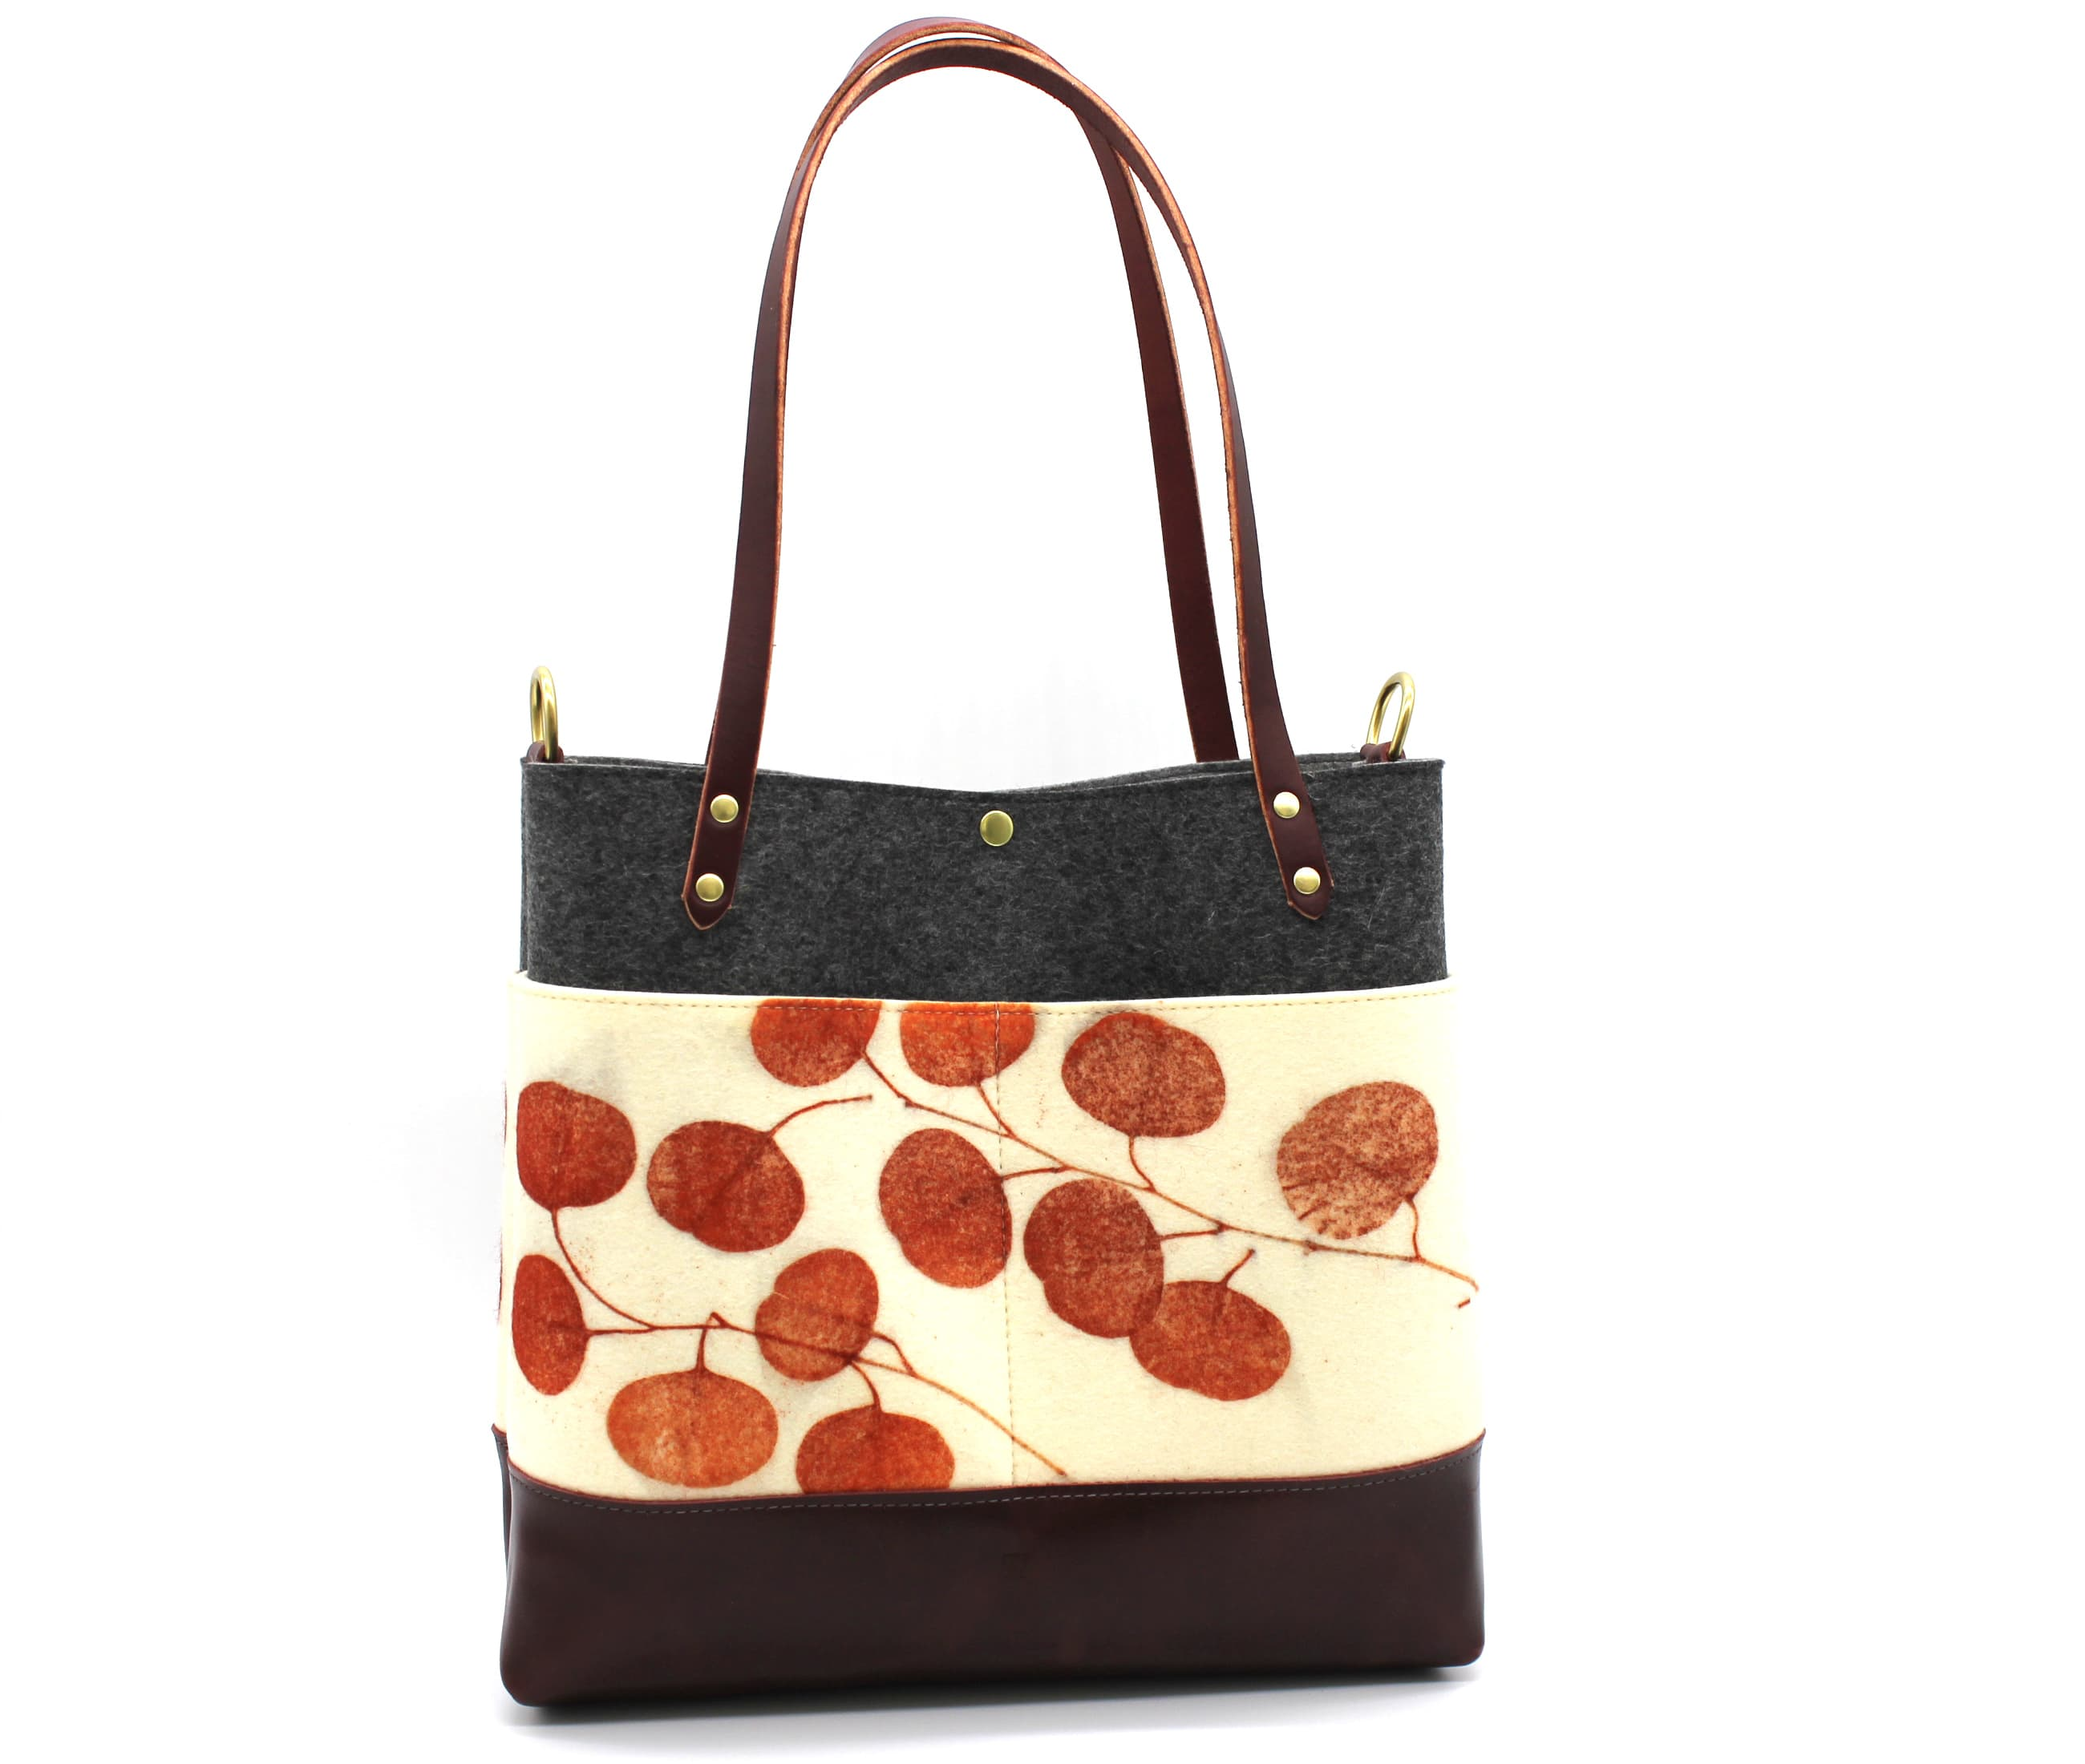 /az0067014-01_wbngre.jpg view of the Medium Felt Tote / Eucalyptus Print by Azellaz